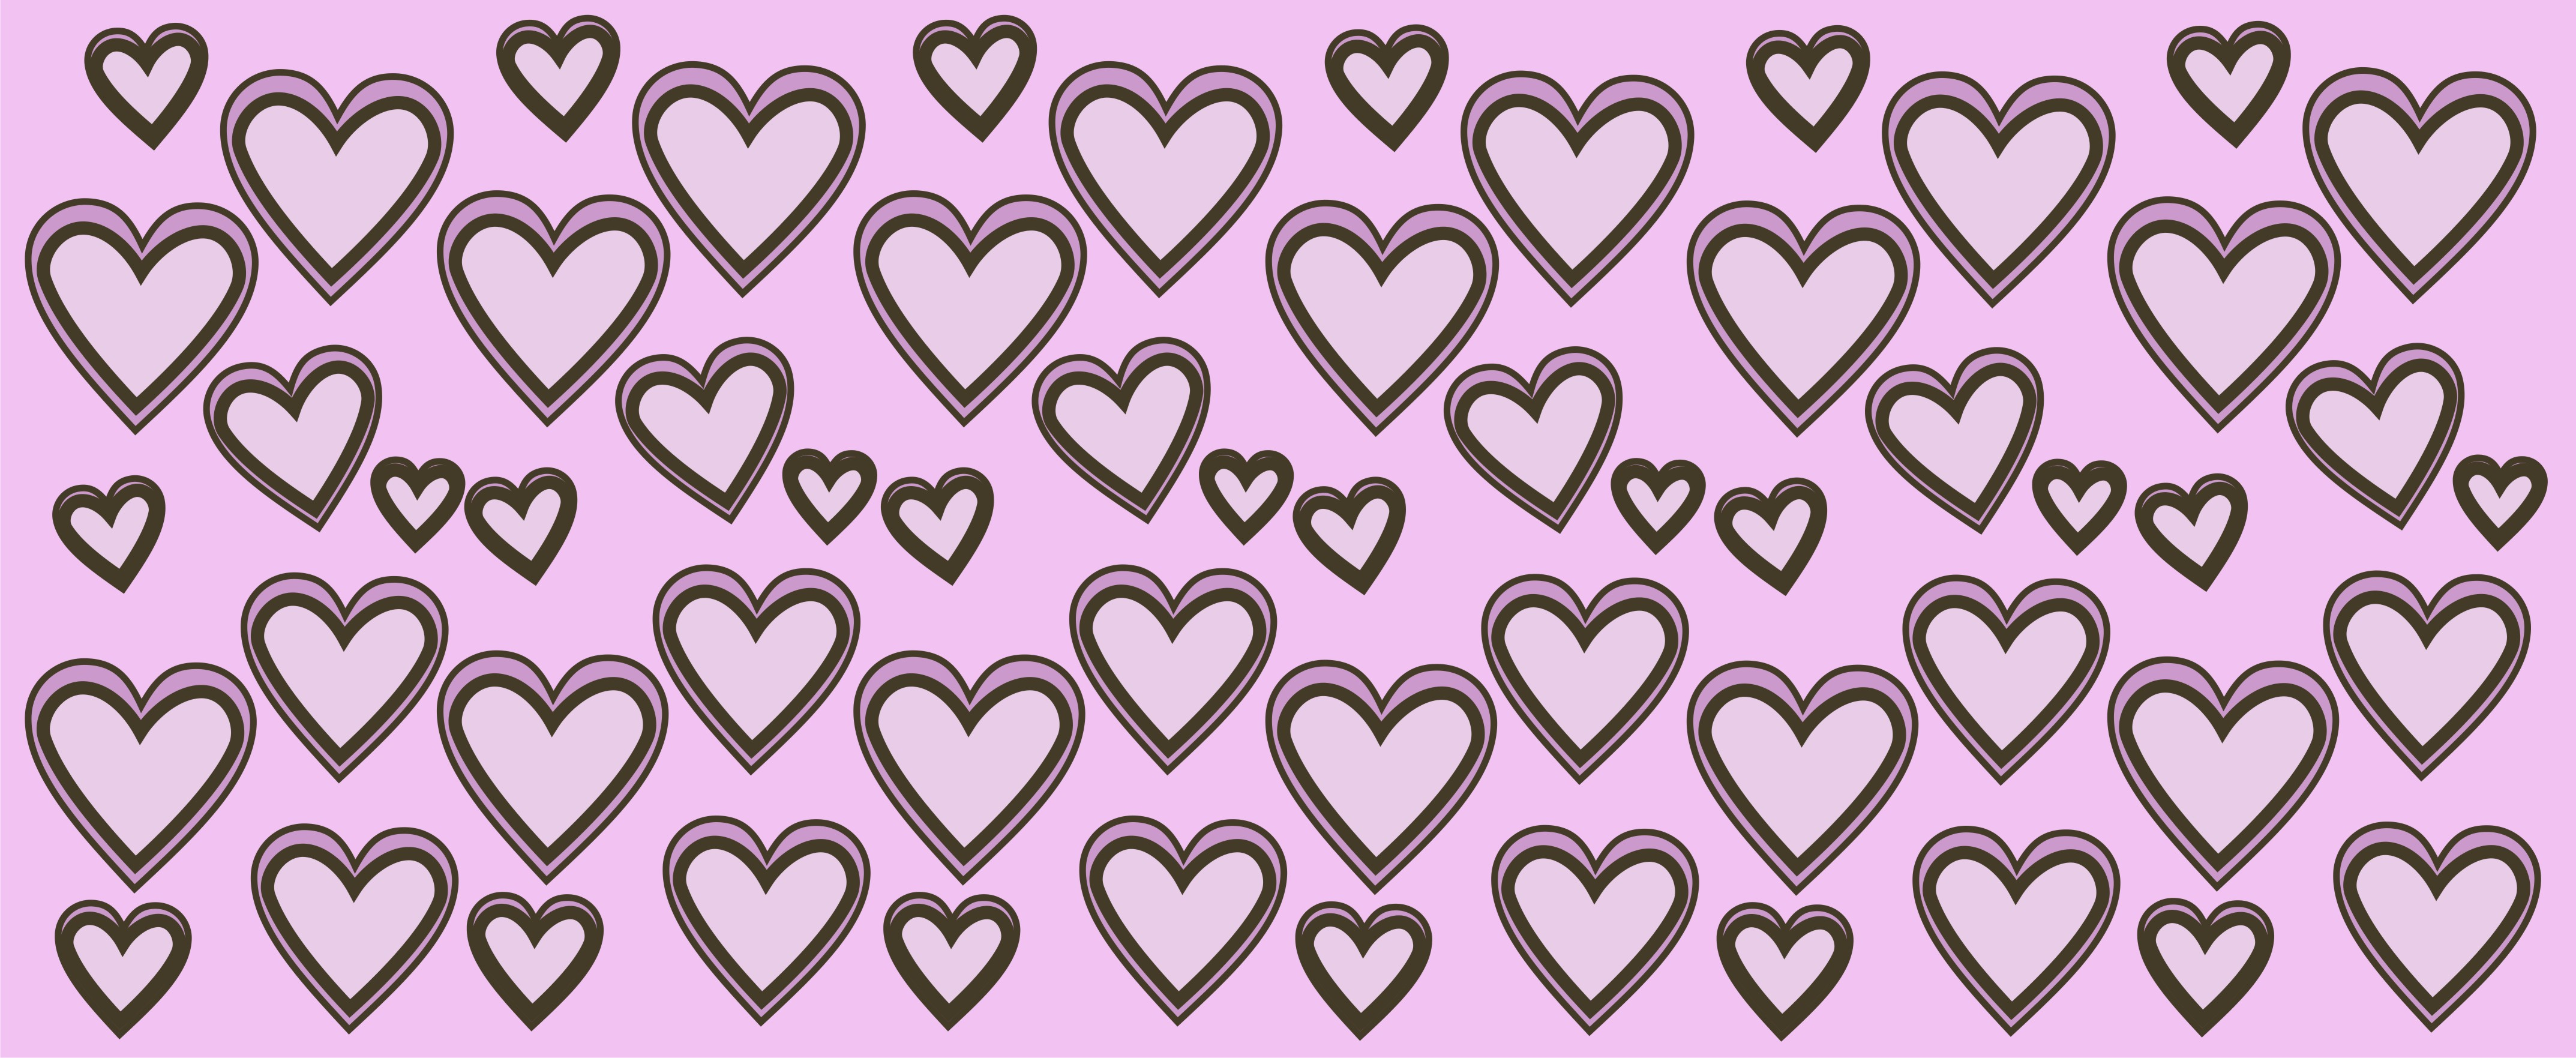 hearts wallpaper design from Mike Turner Photography